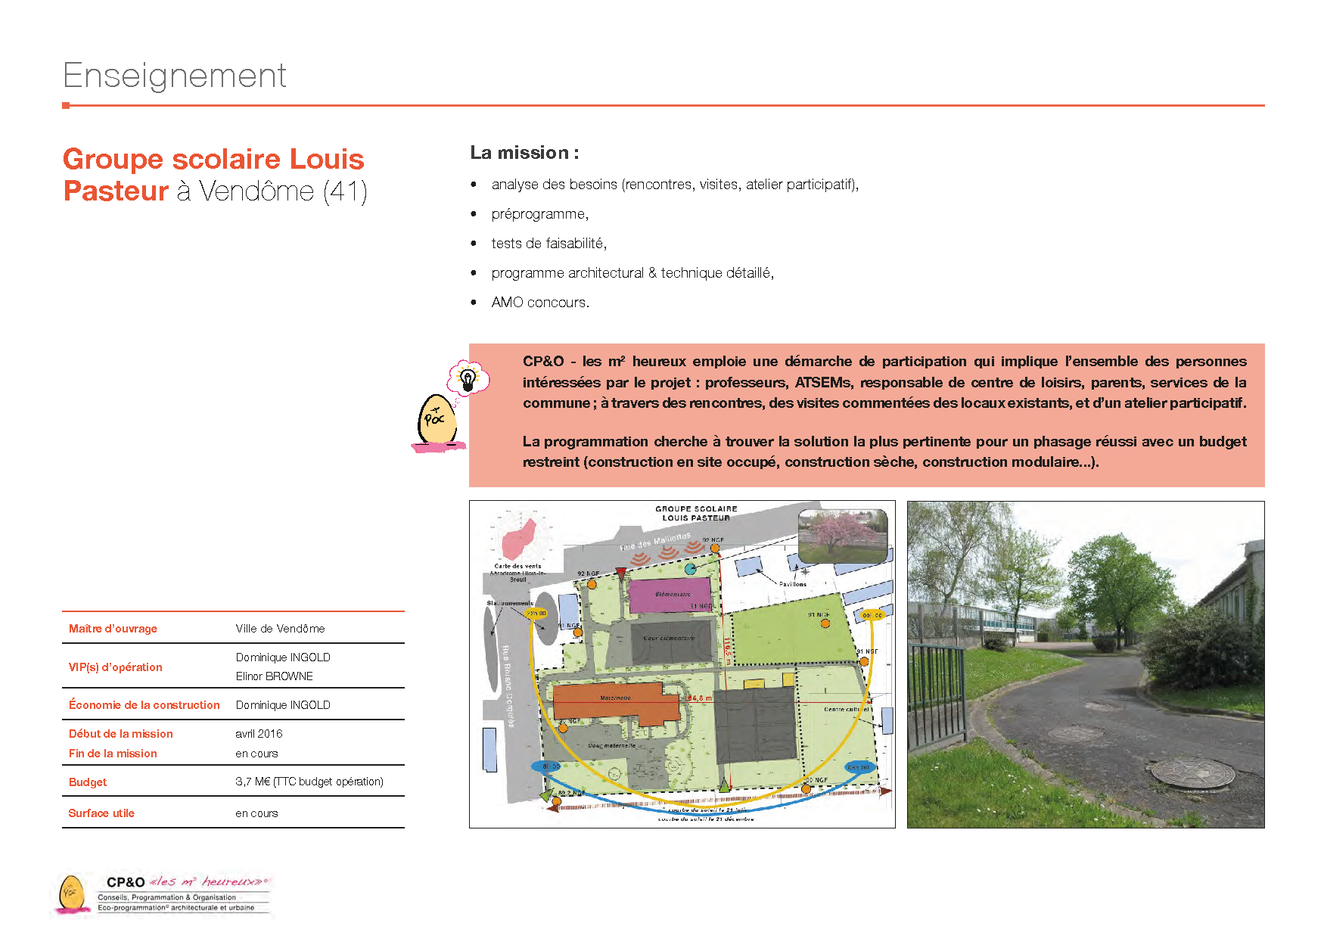 enseignement_Page_20.png